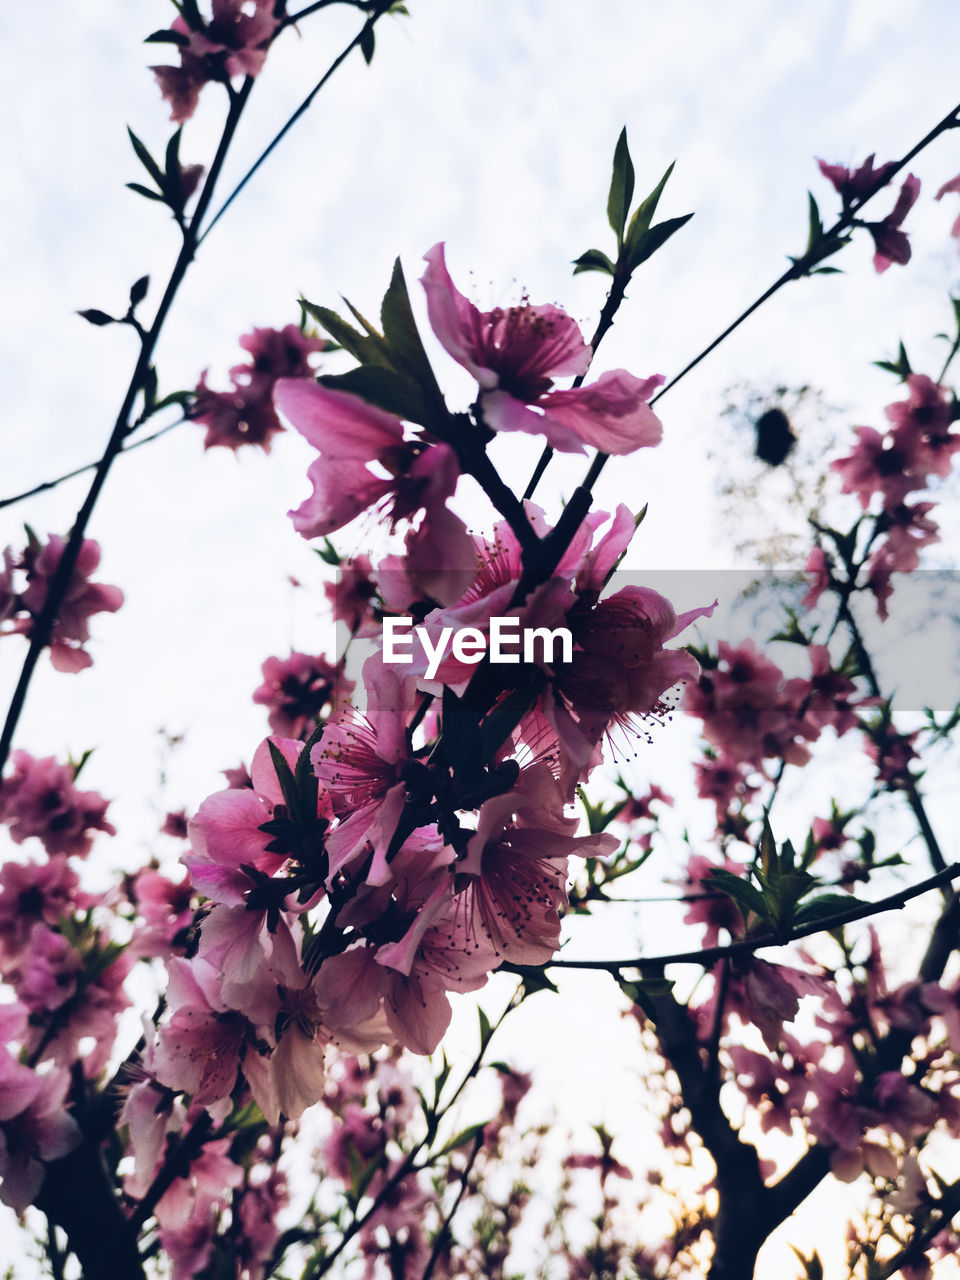 flower, flowering plant, plant, fragility, freshness, growth, pink color, vulnerability, beauty in nature, tree, close-up, nature, blossom, petal, no people, branch, day, springtime, inflorescence, outdoors, flower head, spring, cherry blossom, cherry tree, purple, bunch of flowers, lilac